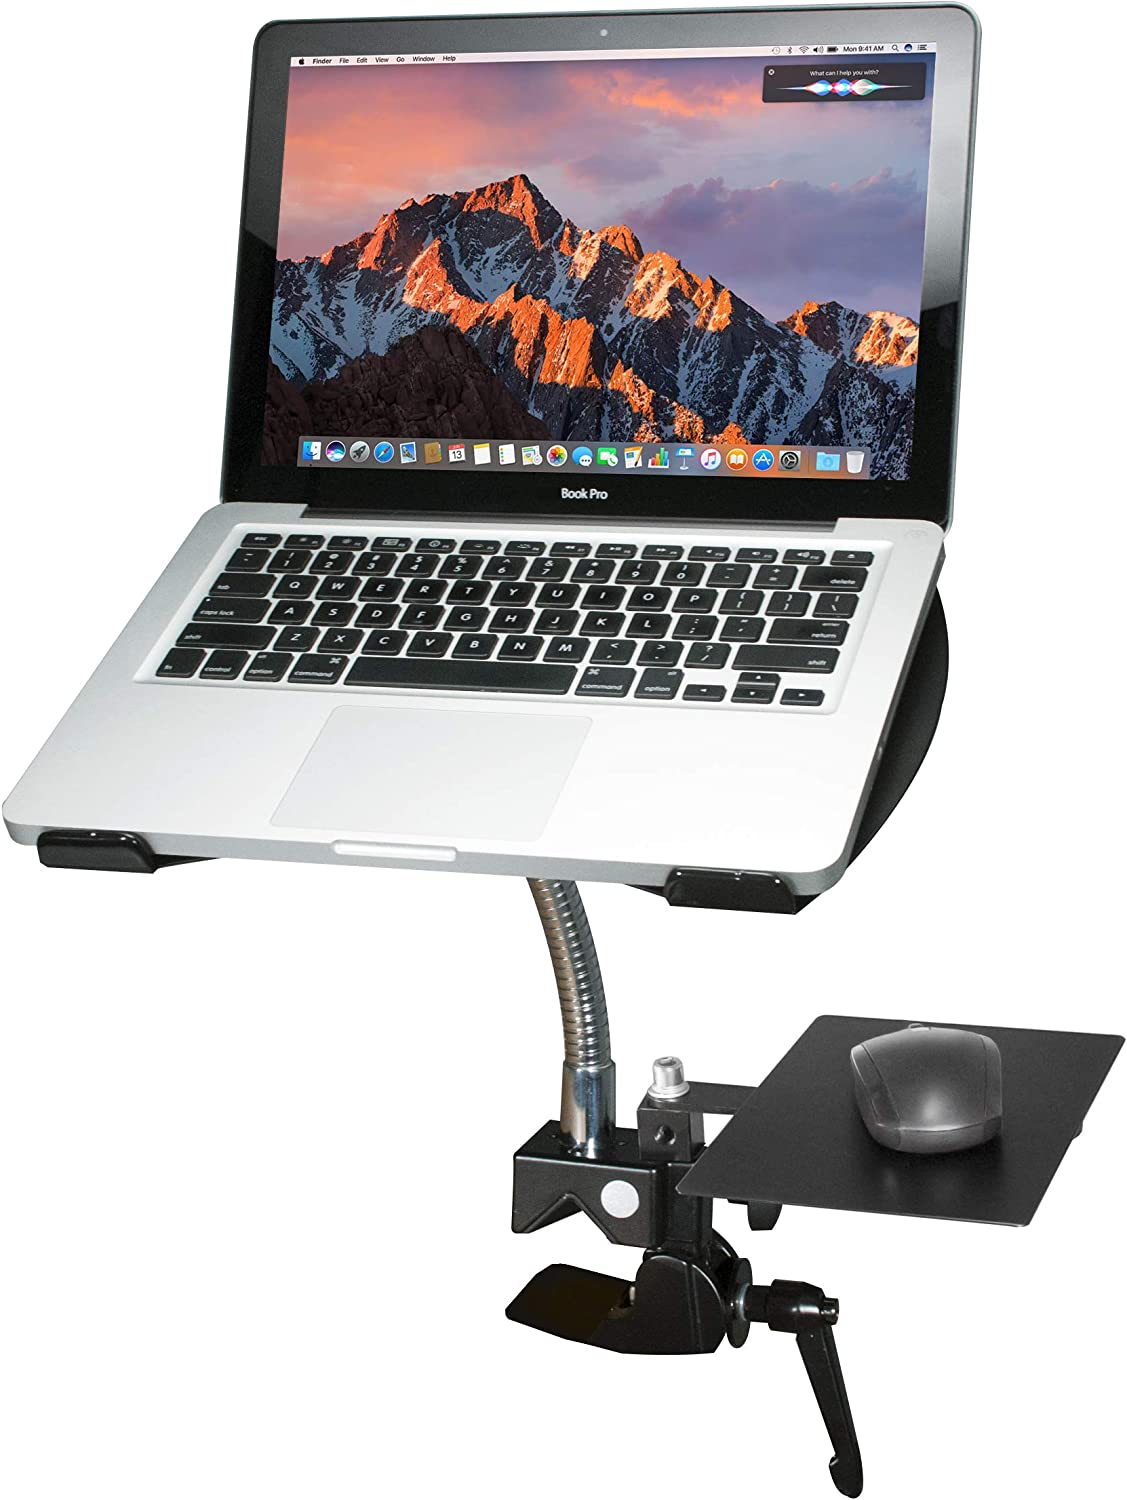 CTein Digital PAD-HGL Heavy-Duty Gooseneck Clamp Stand for Laptops Black